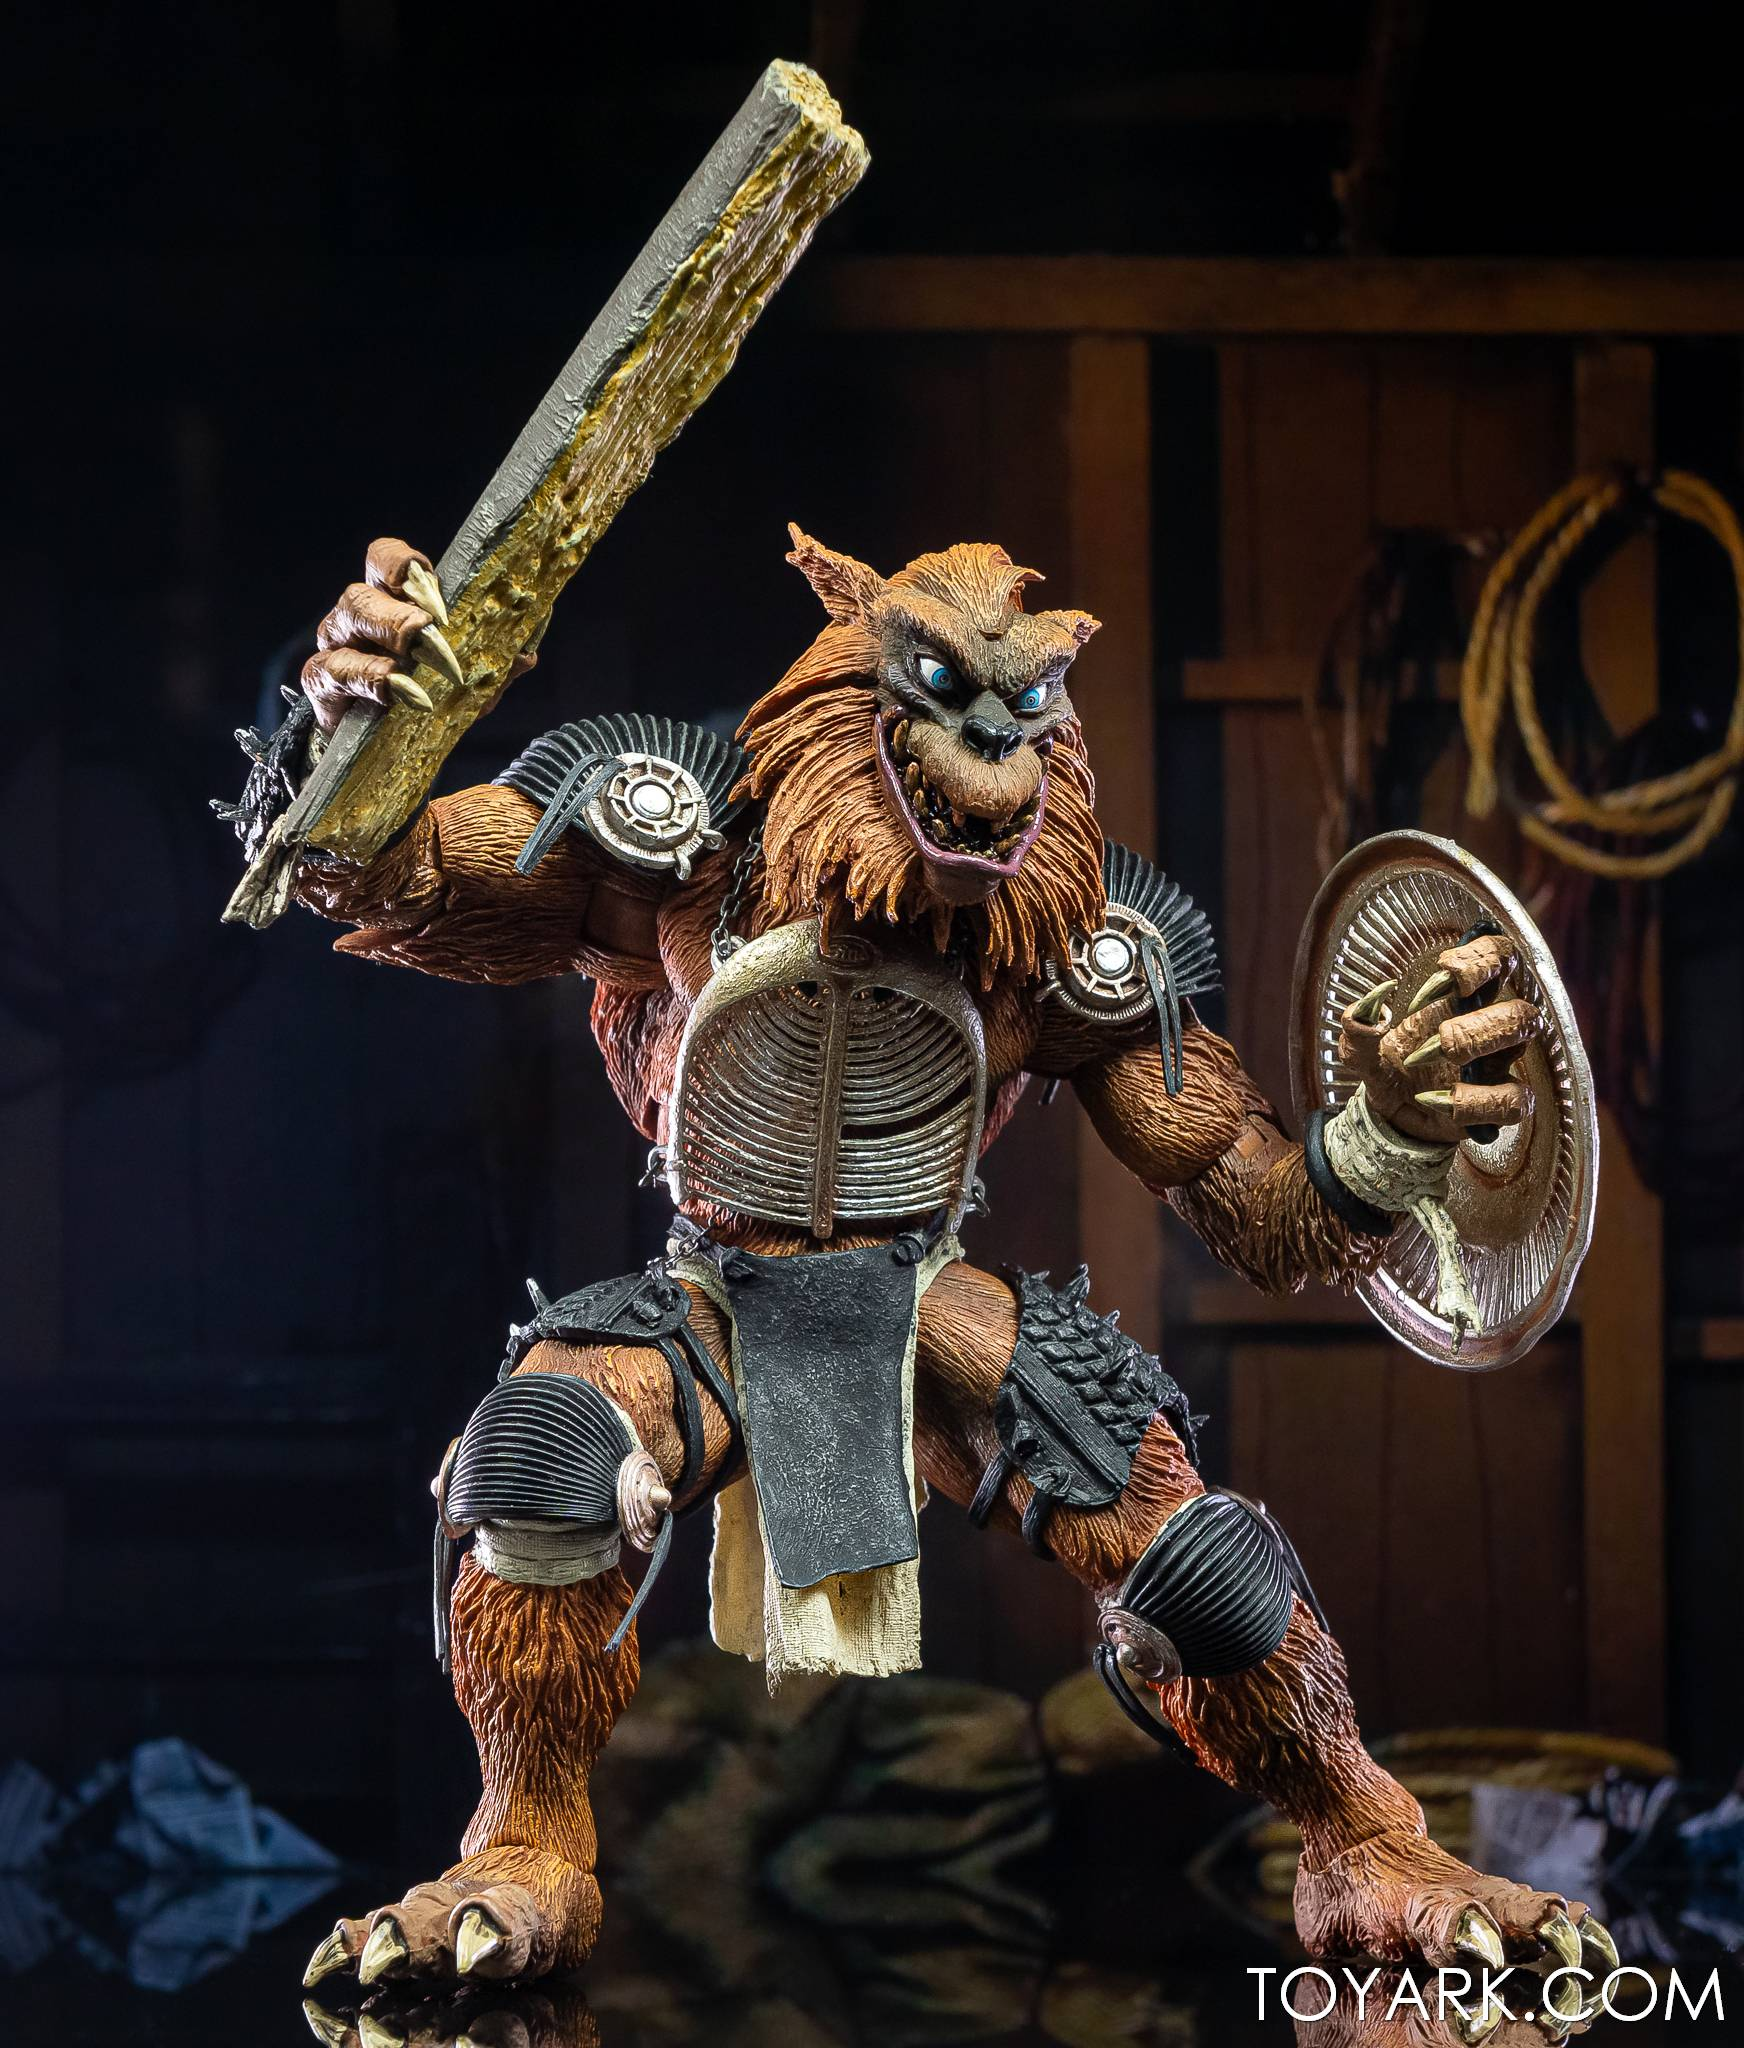 https://news.toyark.com/wp-content/uploads/sites/4/2021/03/NECA-Tokka-and-Rahzar-TMNT-II-028.jpg